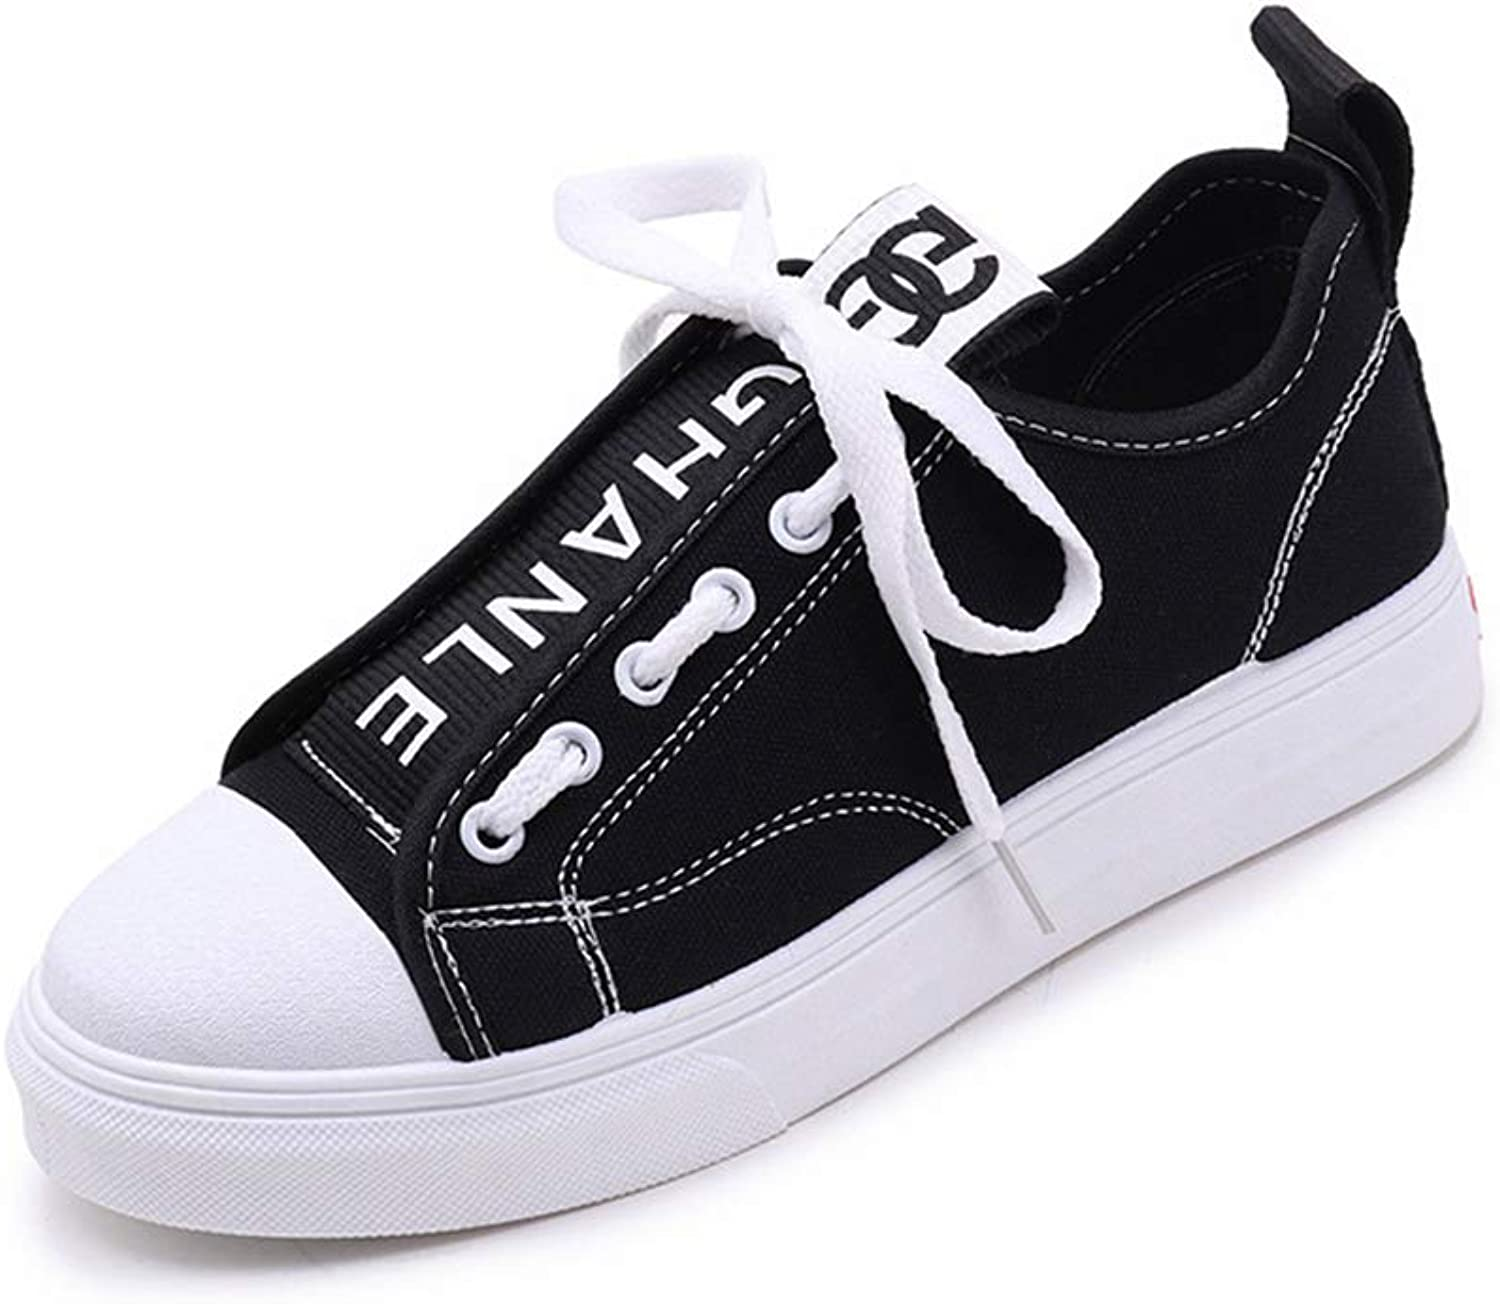 Ladies Canvas shoes Sneakers Casual shoes Lace up Casual Breathble Walking